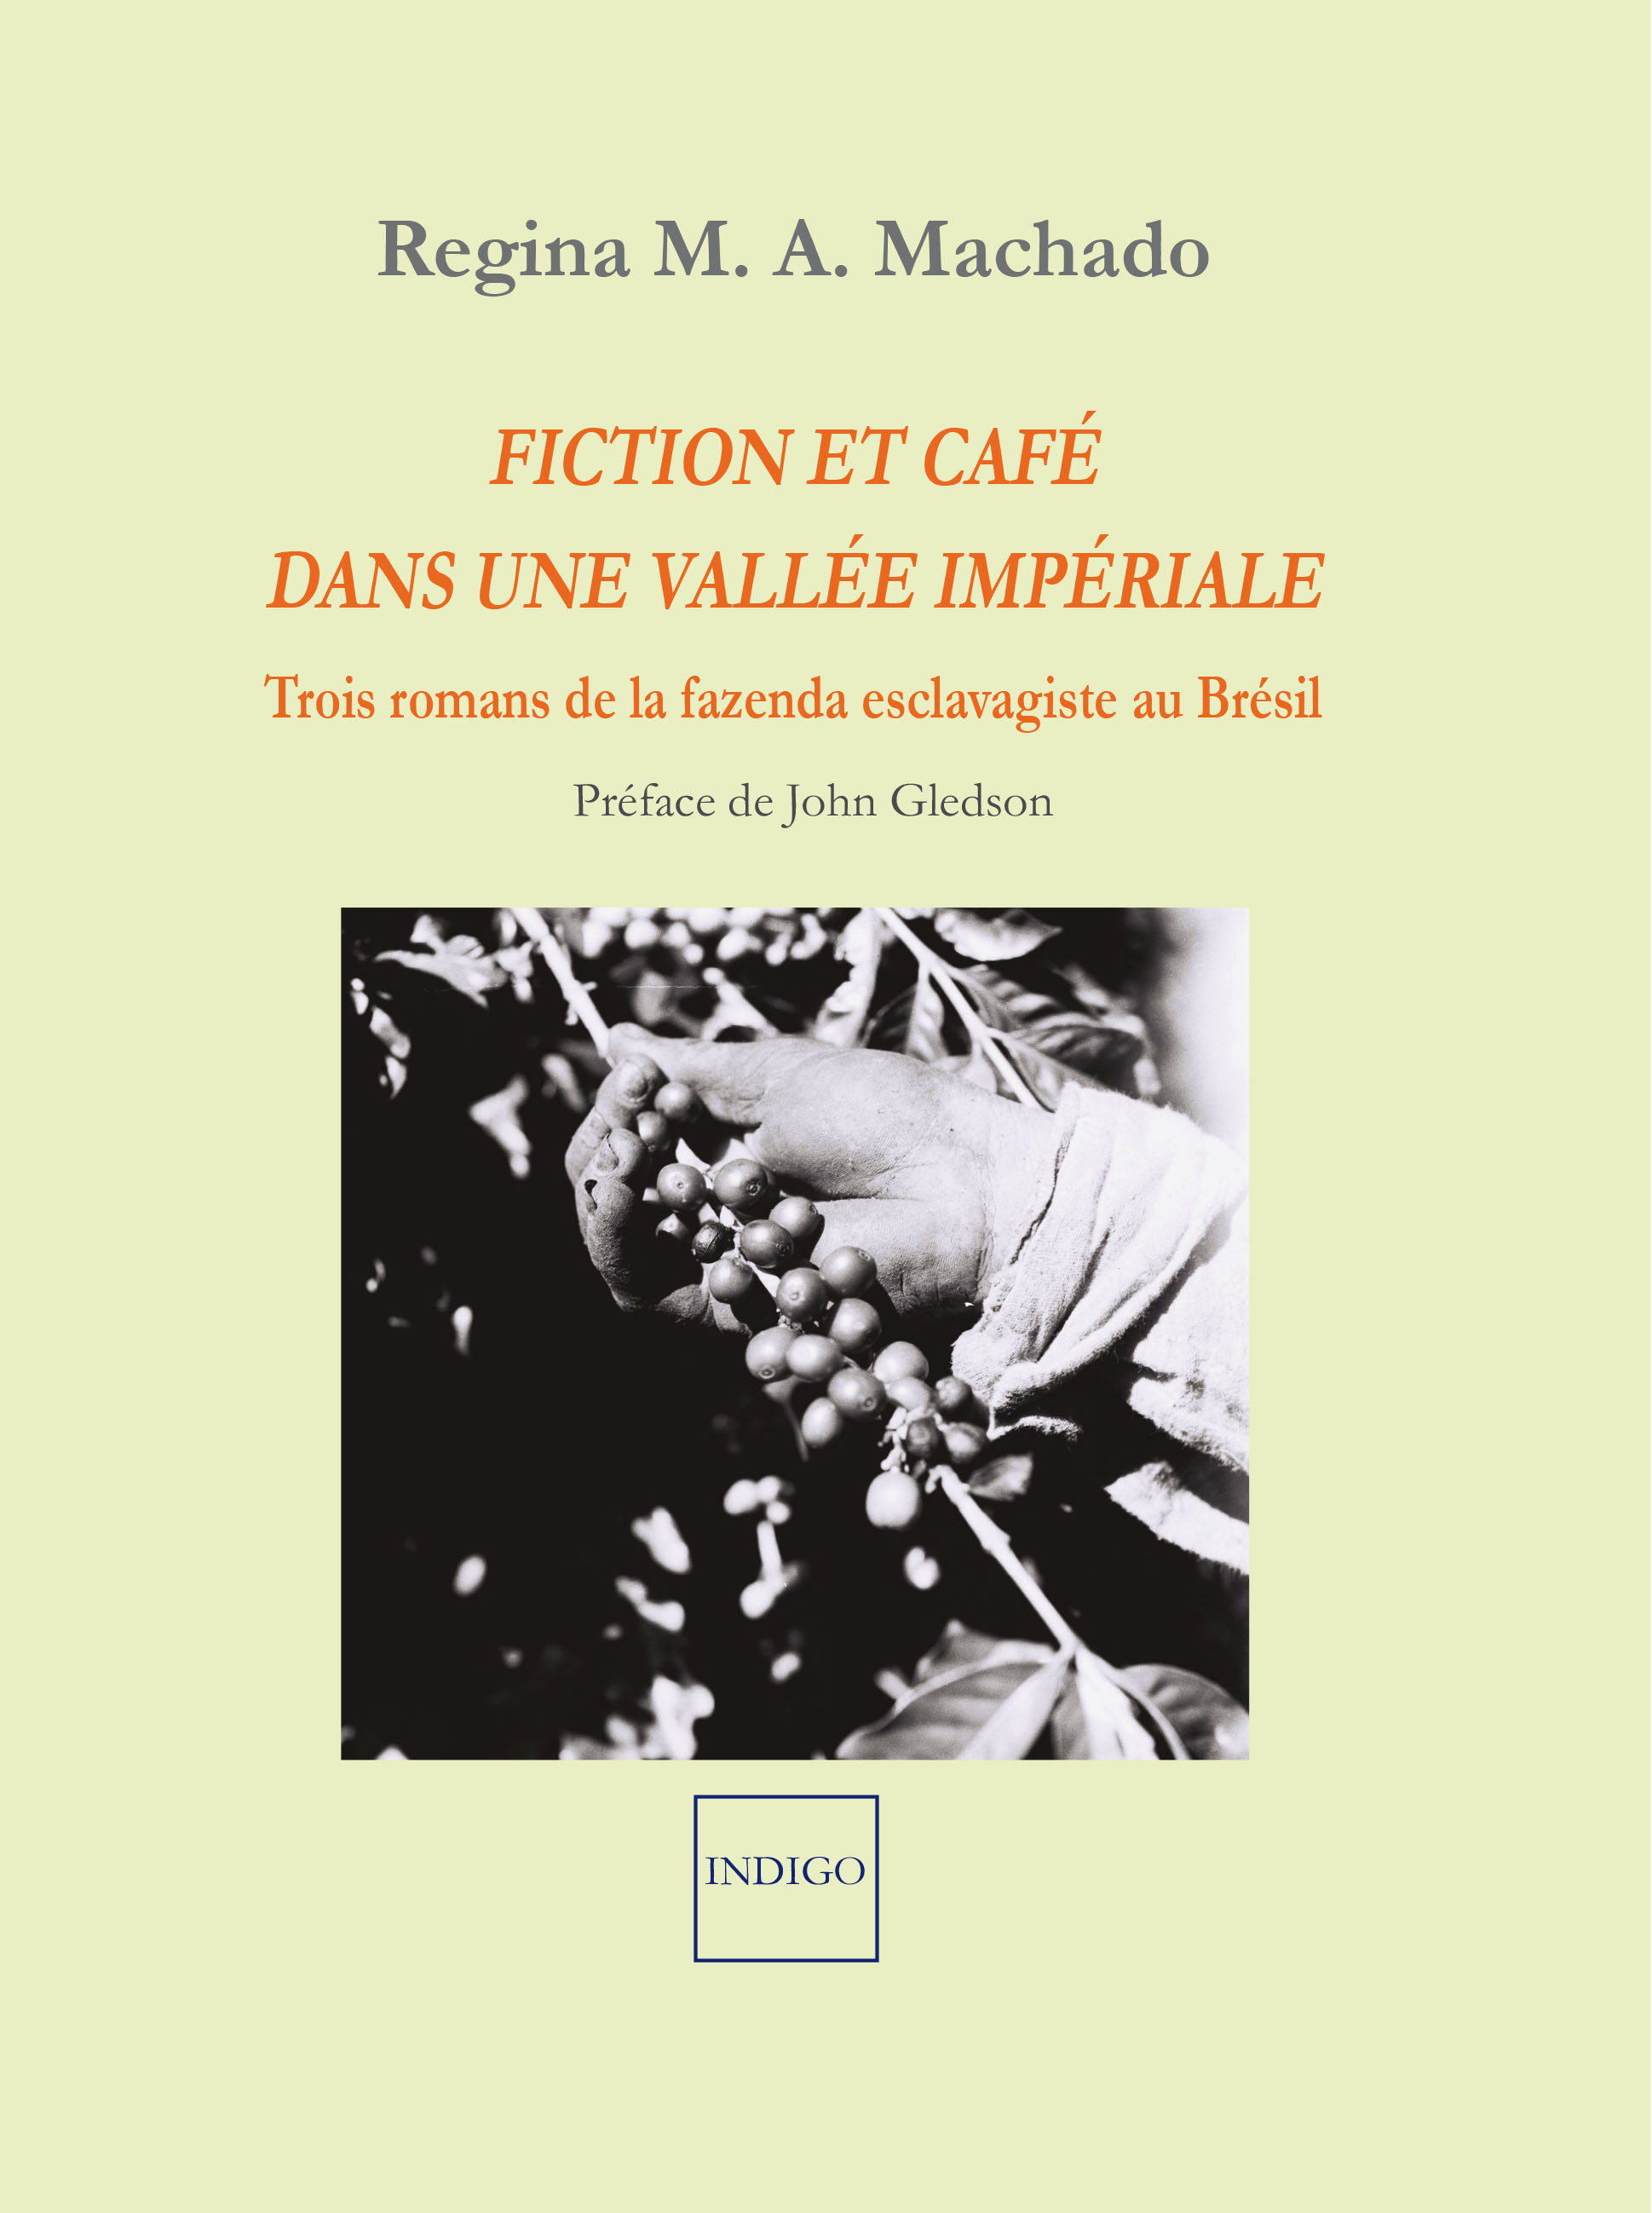 Fiction et café